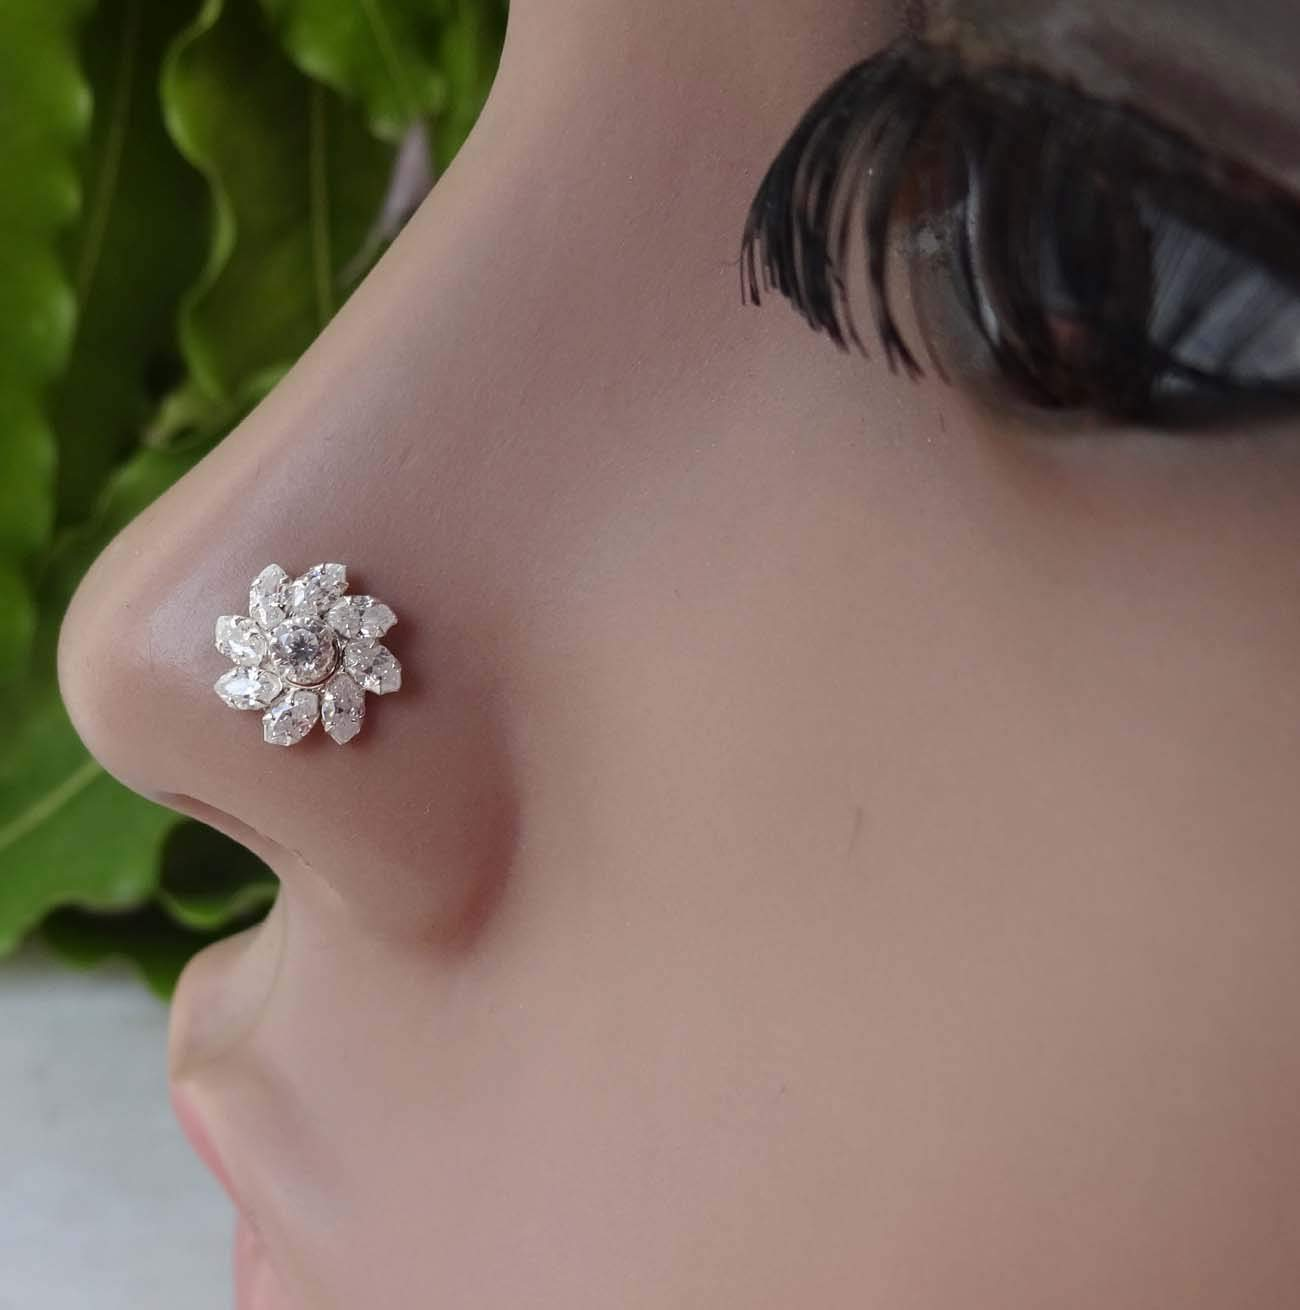 TEJ168 Indian Nose Stud,Indian Nose Hoop,Mother Day Gifts,Flower Nose Hoop,Thanksgiving Nose Pin,Diamond Nose Stud,Silver Nose Stud,Crock Screw Nose Stud,Nose Stud,Cubic Zirconia Nose Stud